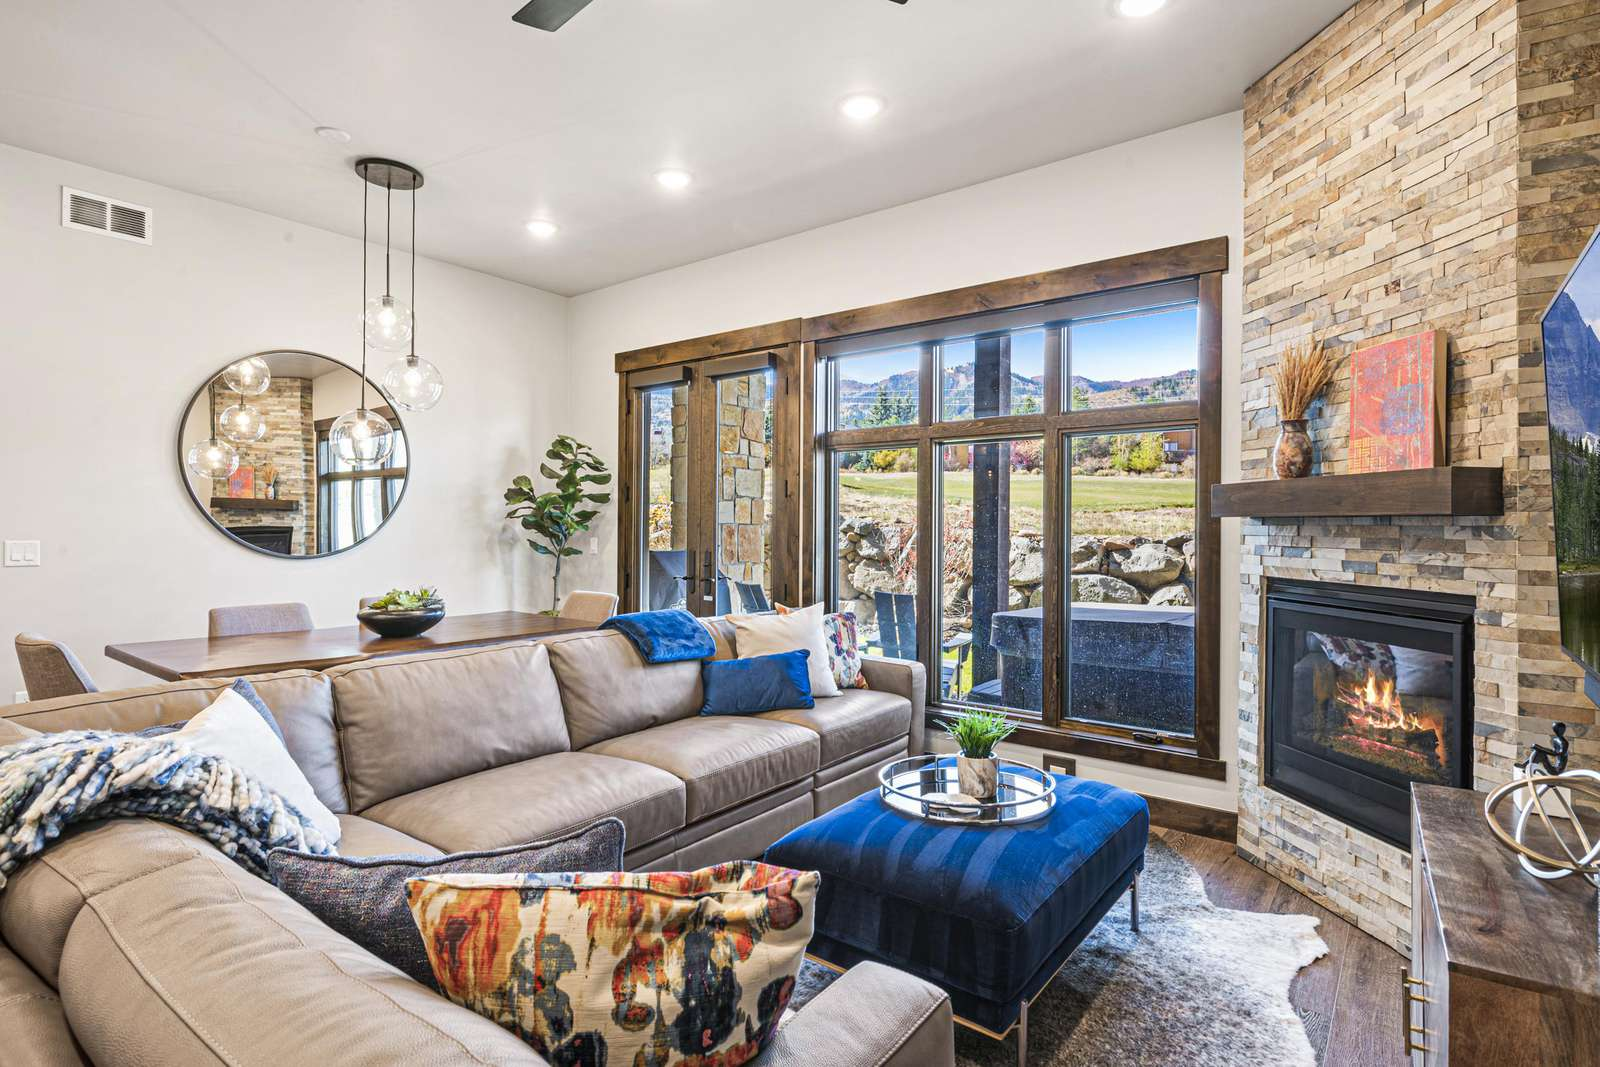 Relax in a spacious living and dining area and view the ski slopes